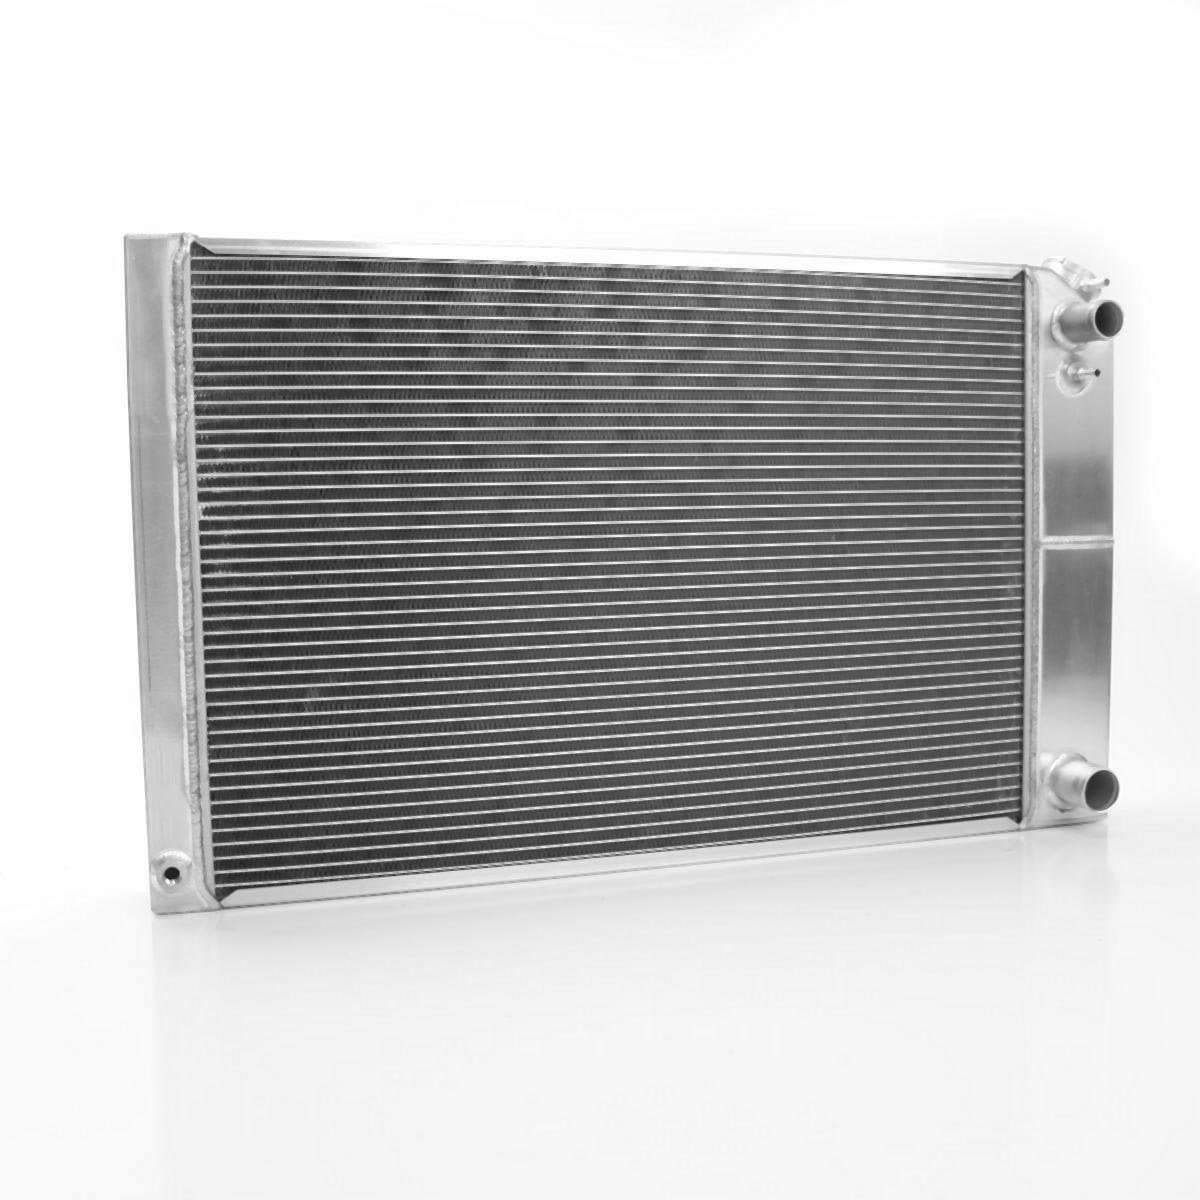 Griffin Radiator 8-00010-LS Dominator Series Universal Fit Cross Flow Radiator for 70-81 Camaro with LS1-LS2-Early LS3